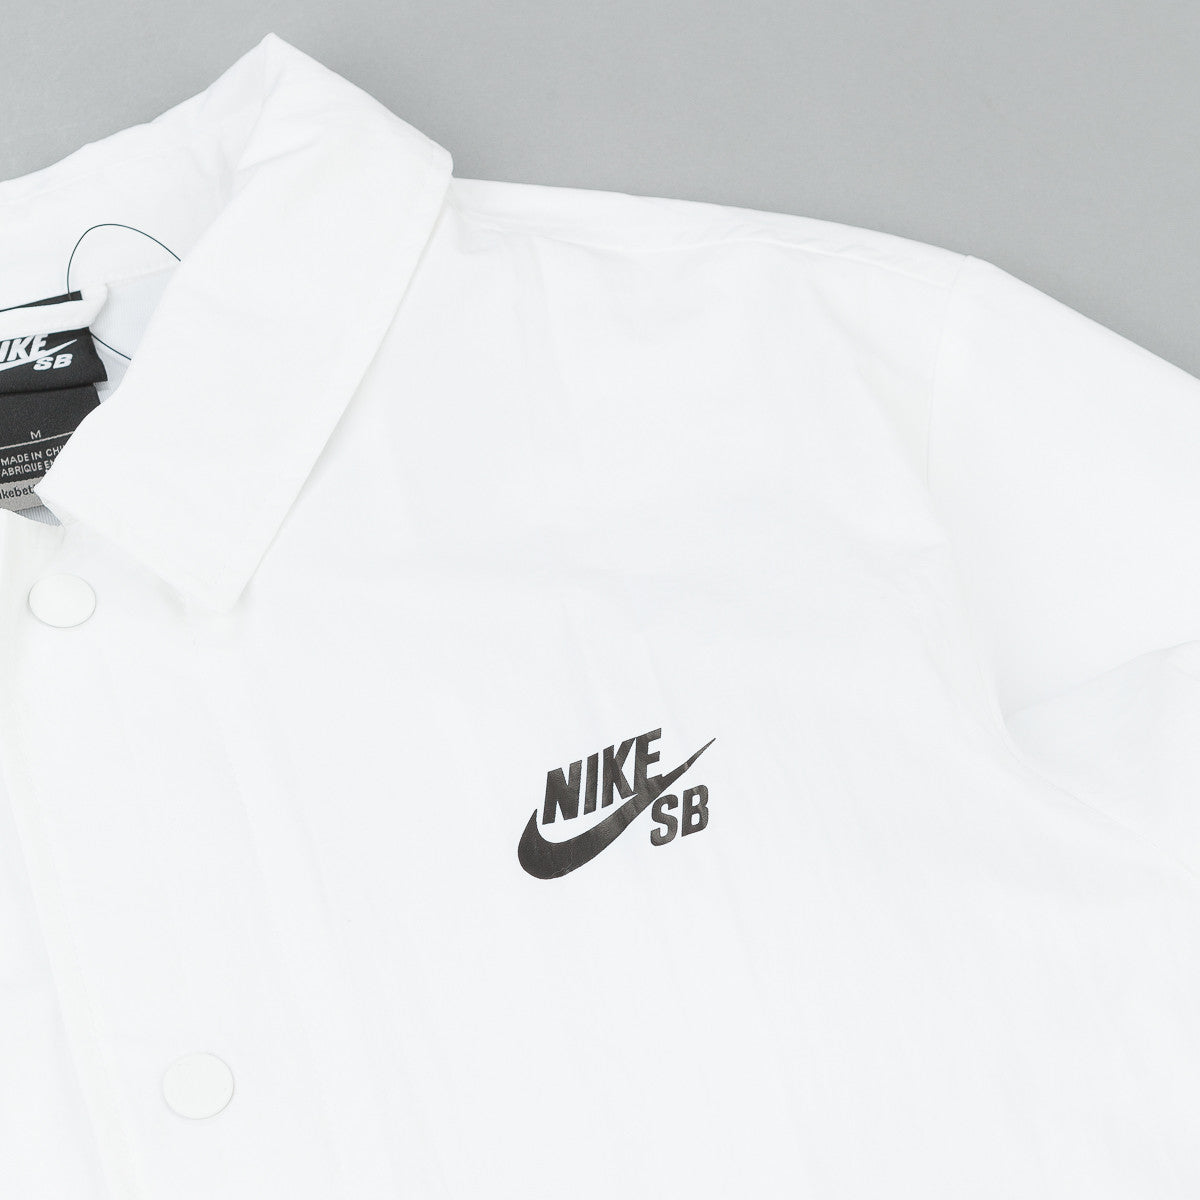 Nike SB Coaches Jacket - White / Black